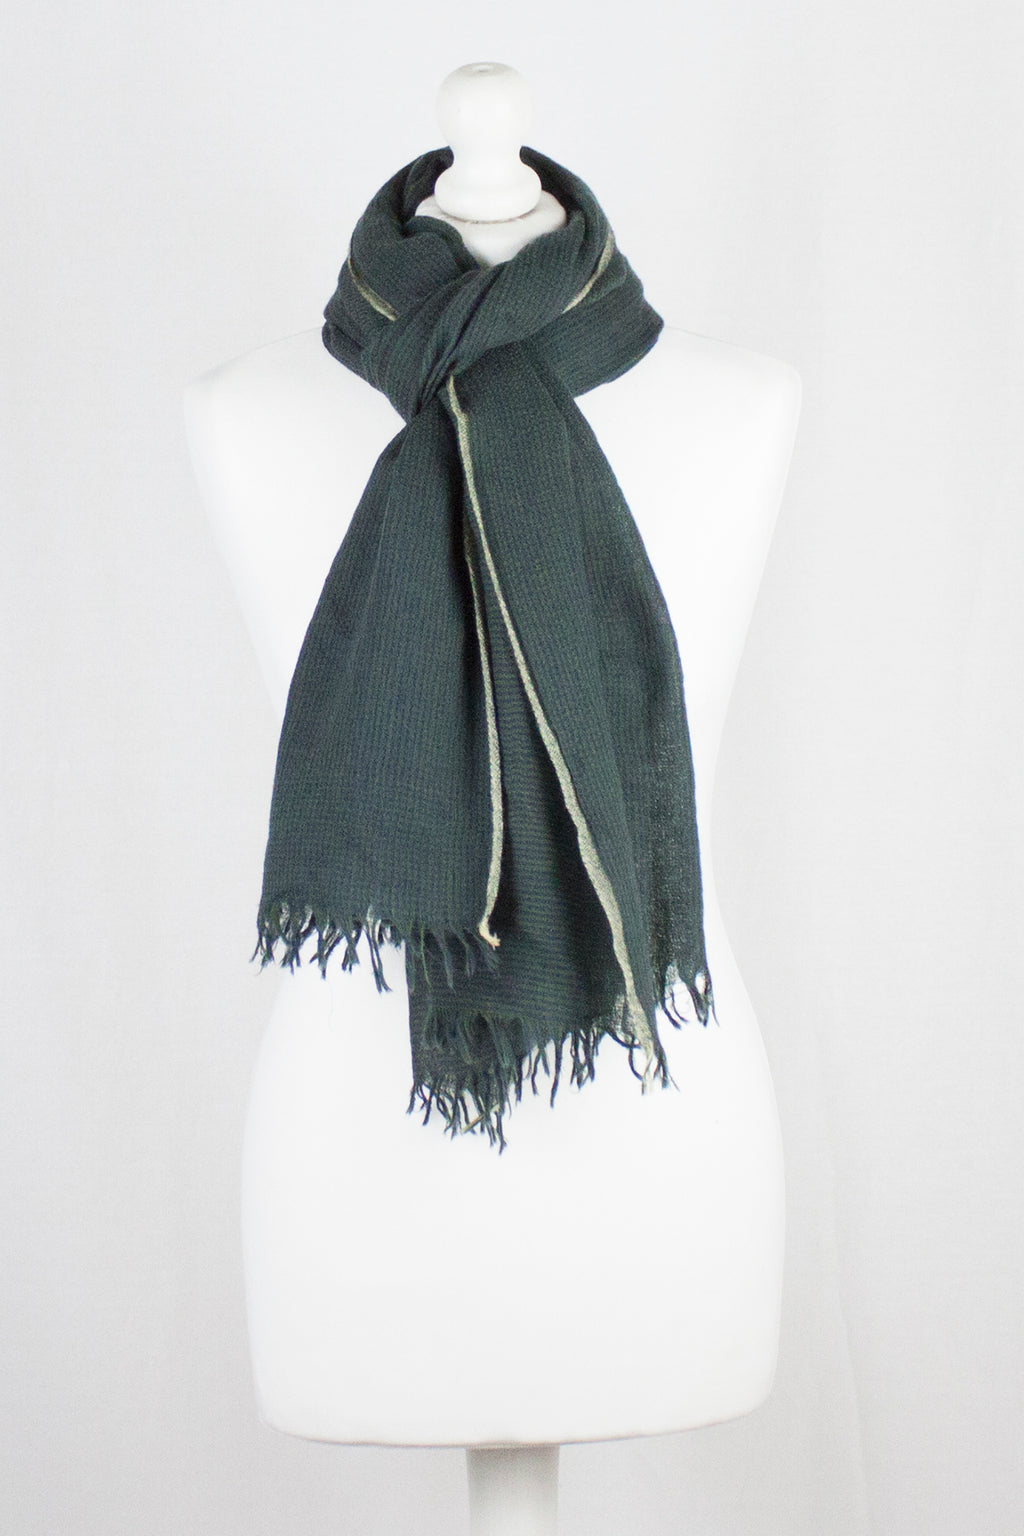 Novelty Weave Two Tone Merino Wool Scarf - Green Navy